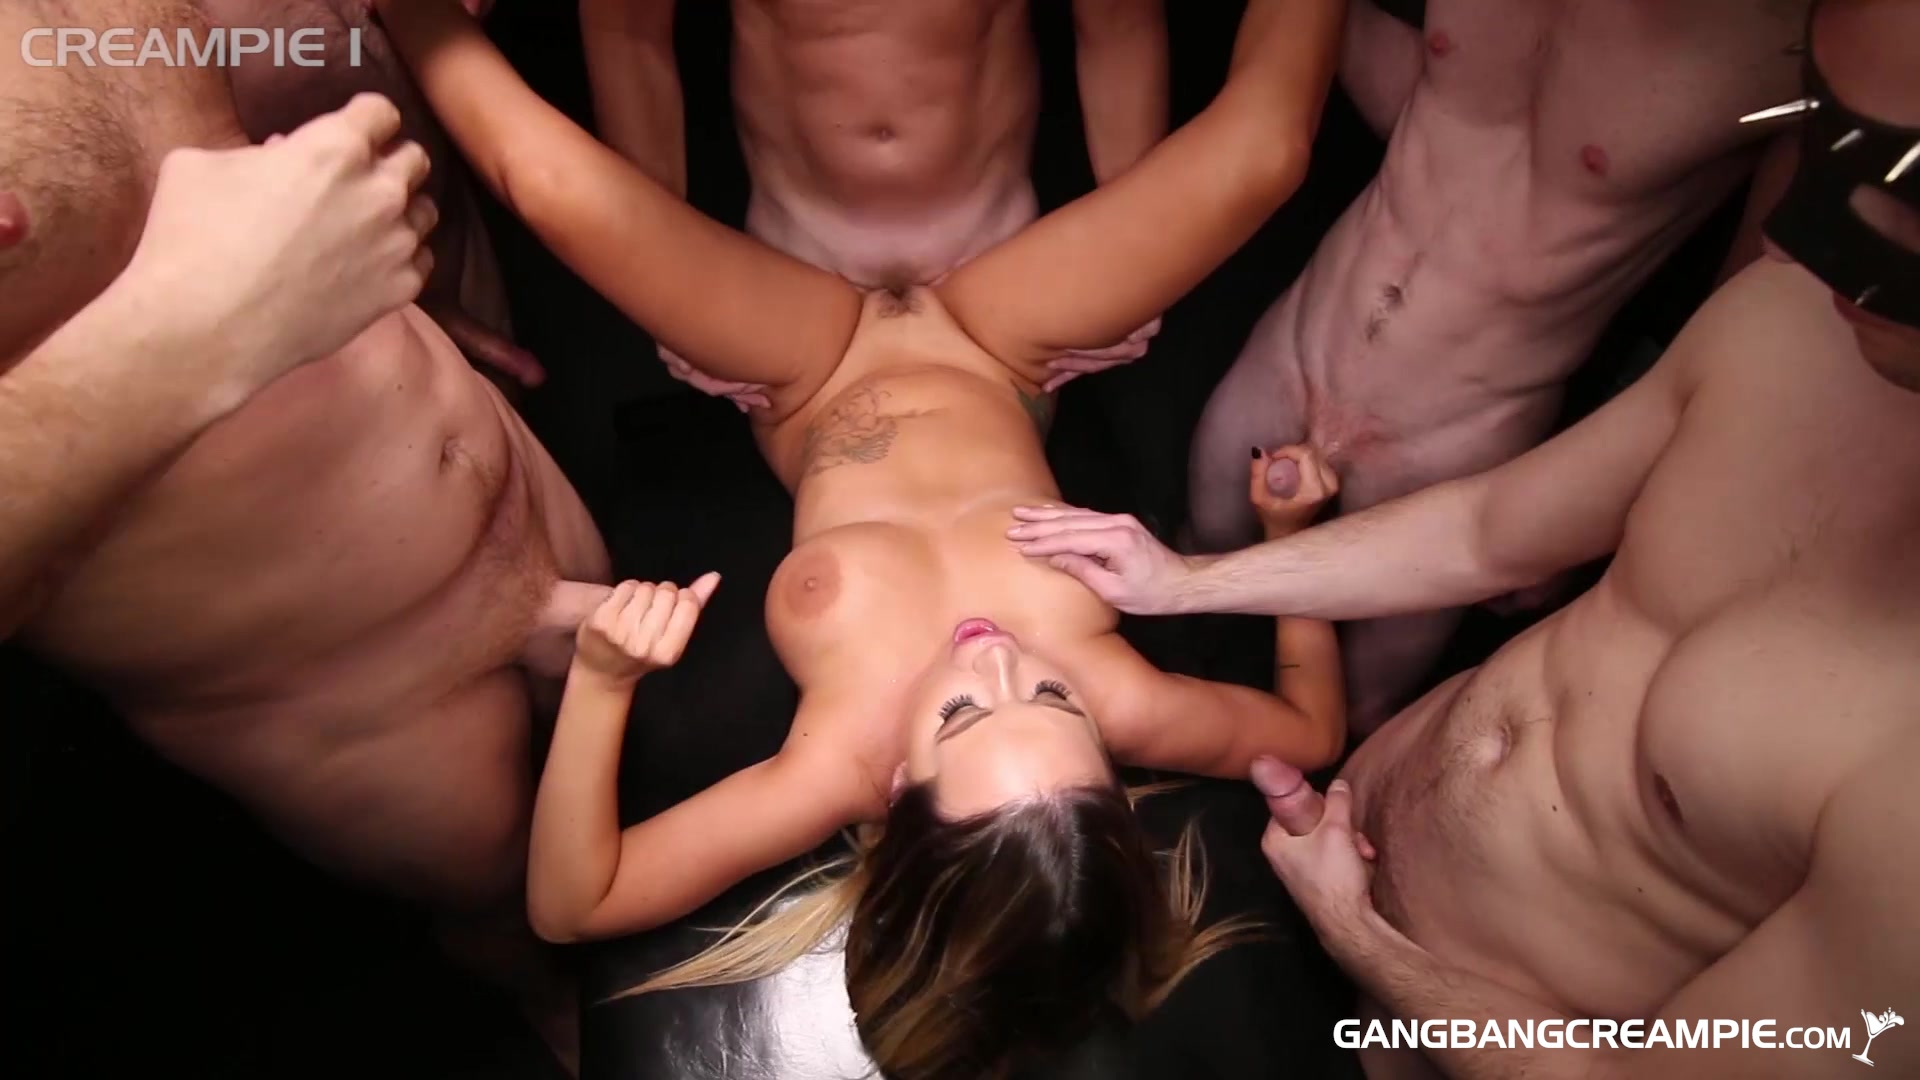 Rachele Richey Gets Covered in Jizz After a Hardcore Gangbang HD streaming porn video scene.